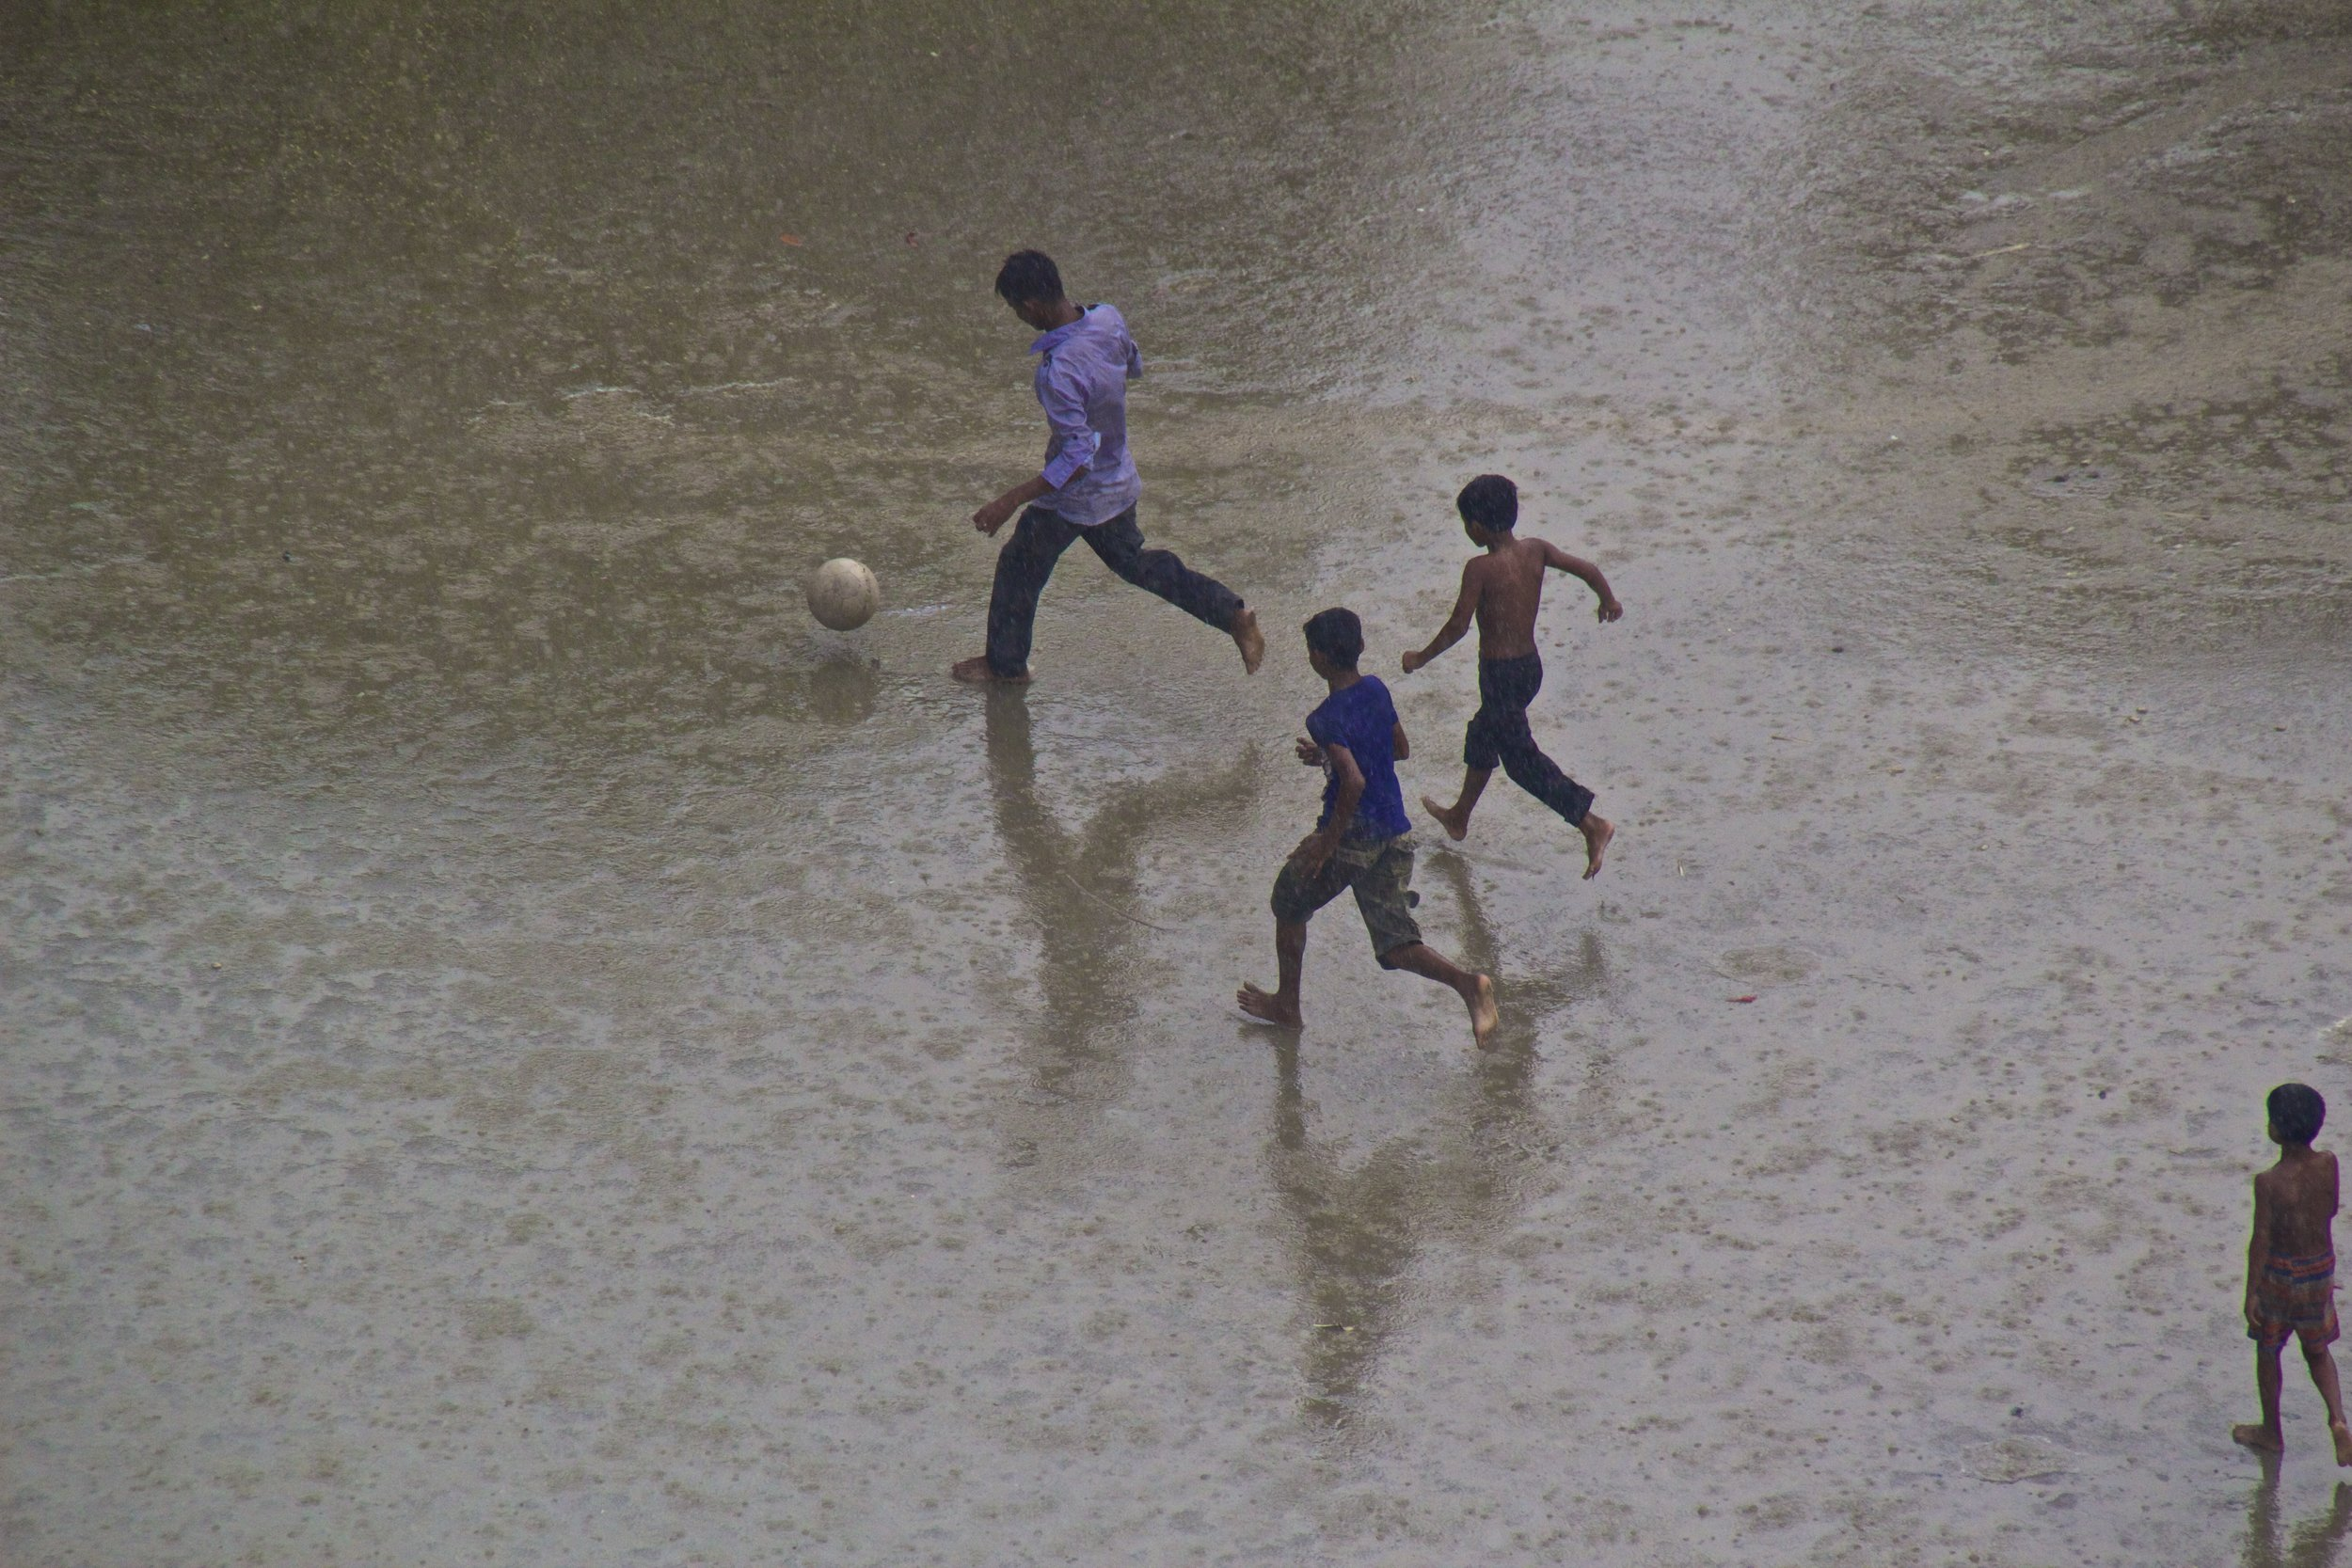 dhaka bangladesh slums soccer monsoon rain 7.jpg